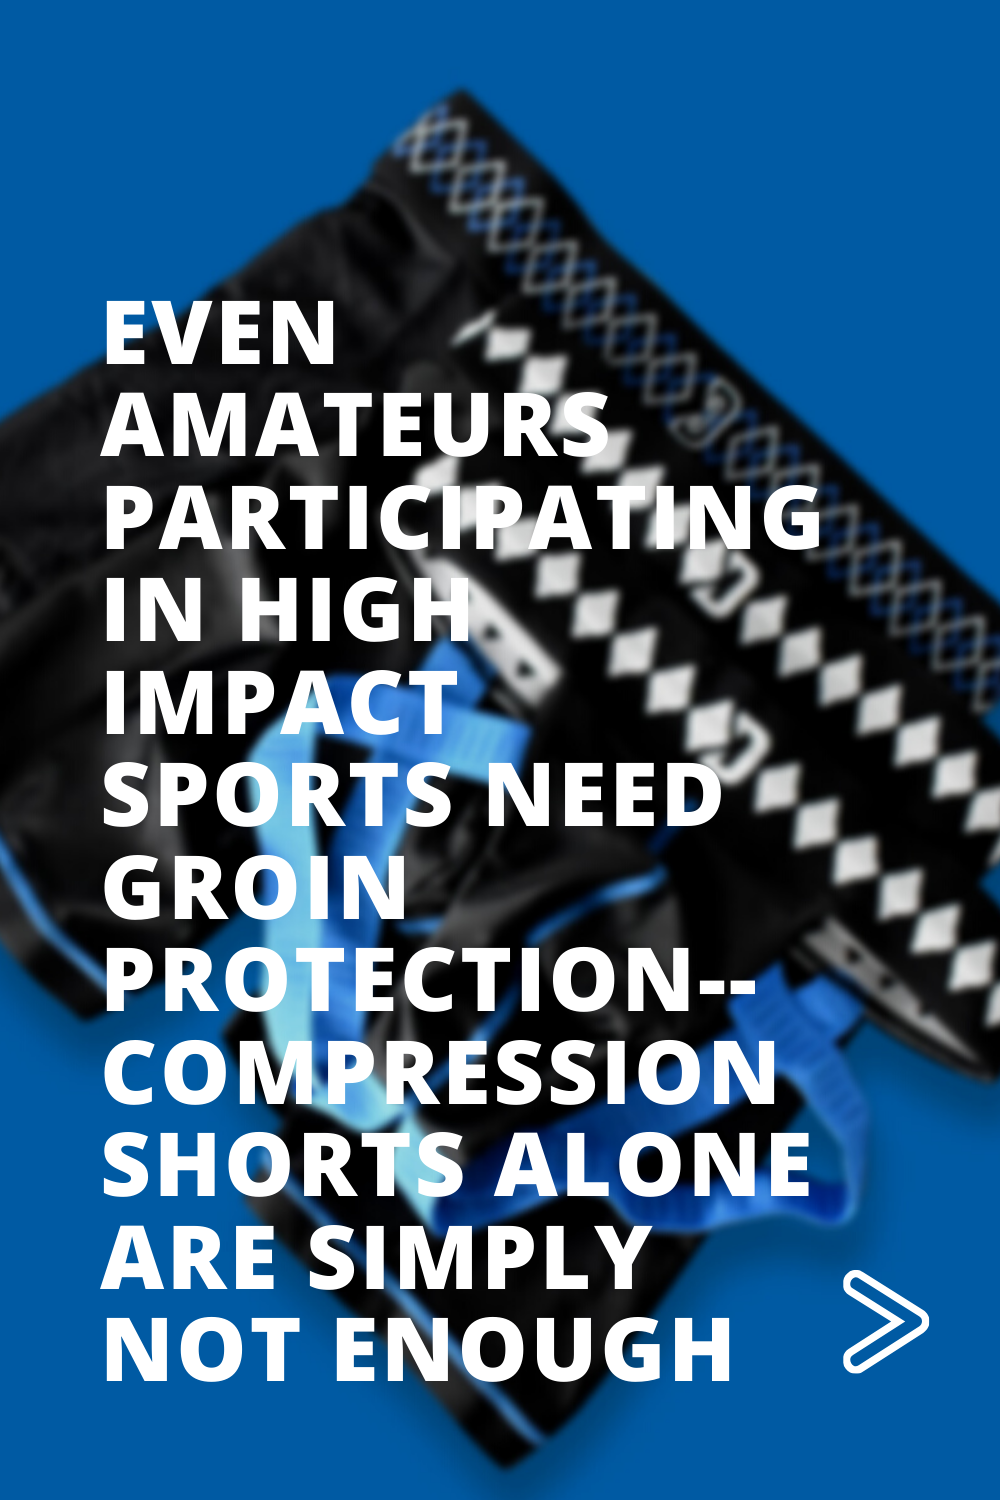 Even Amateurs Participating In High Impact Sports Need Groin Protection - Compression Shorts Alone Are Simply Not Enough